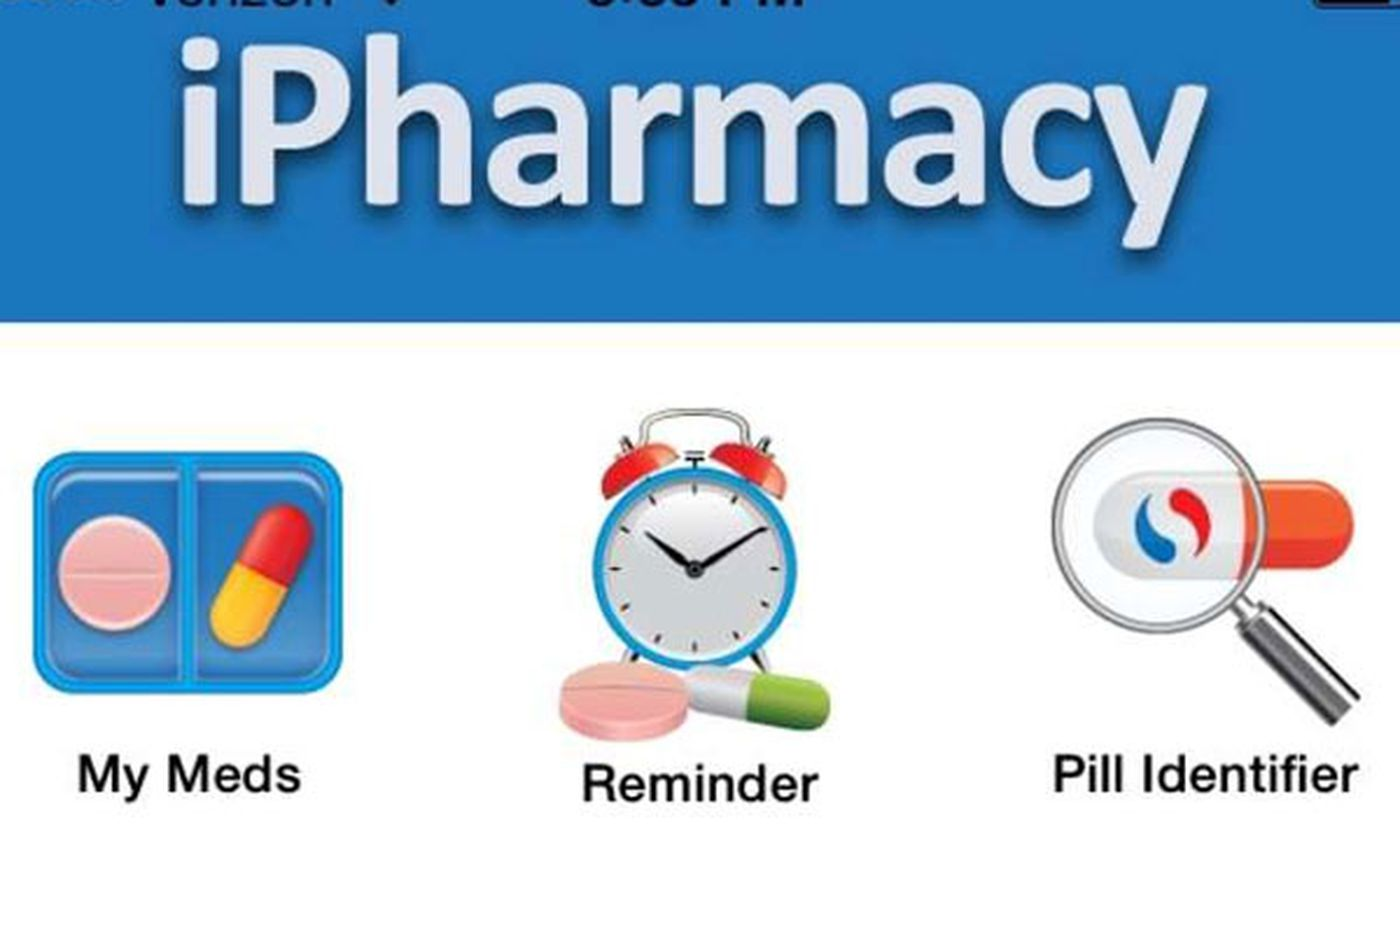 Forgetting to take medicine? There's an app for that